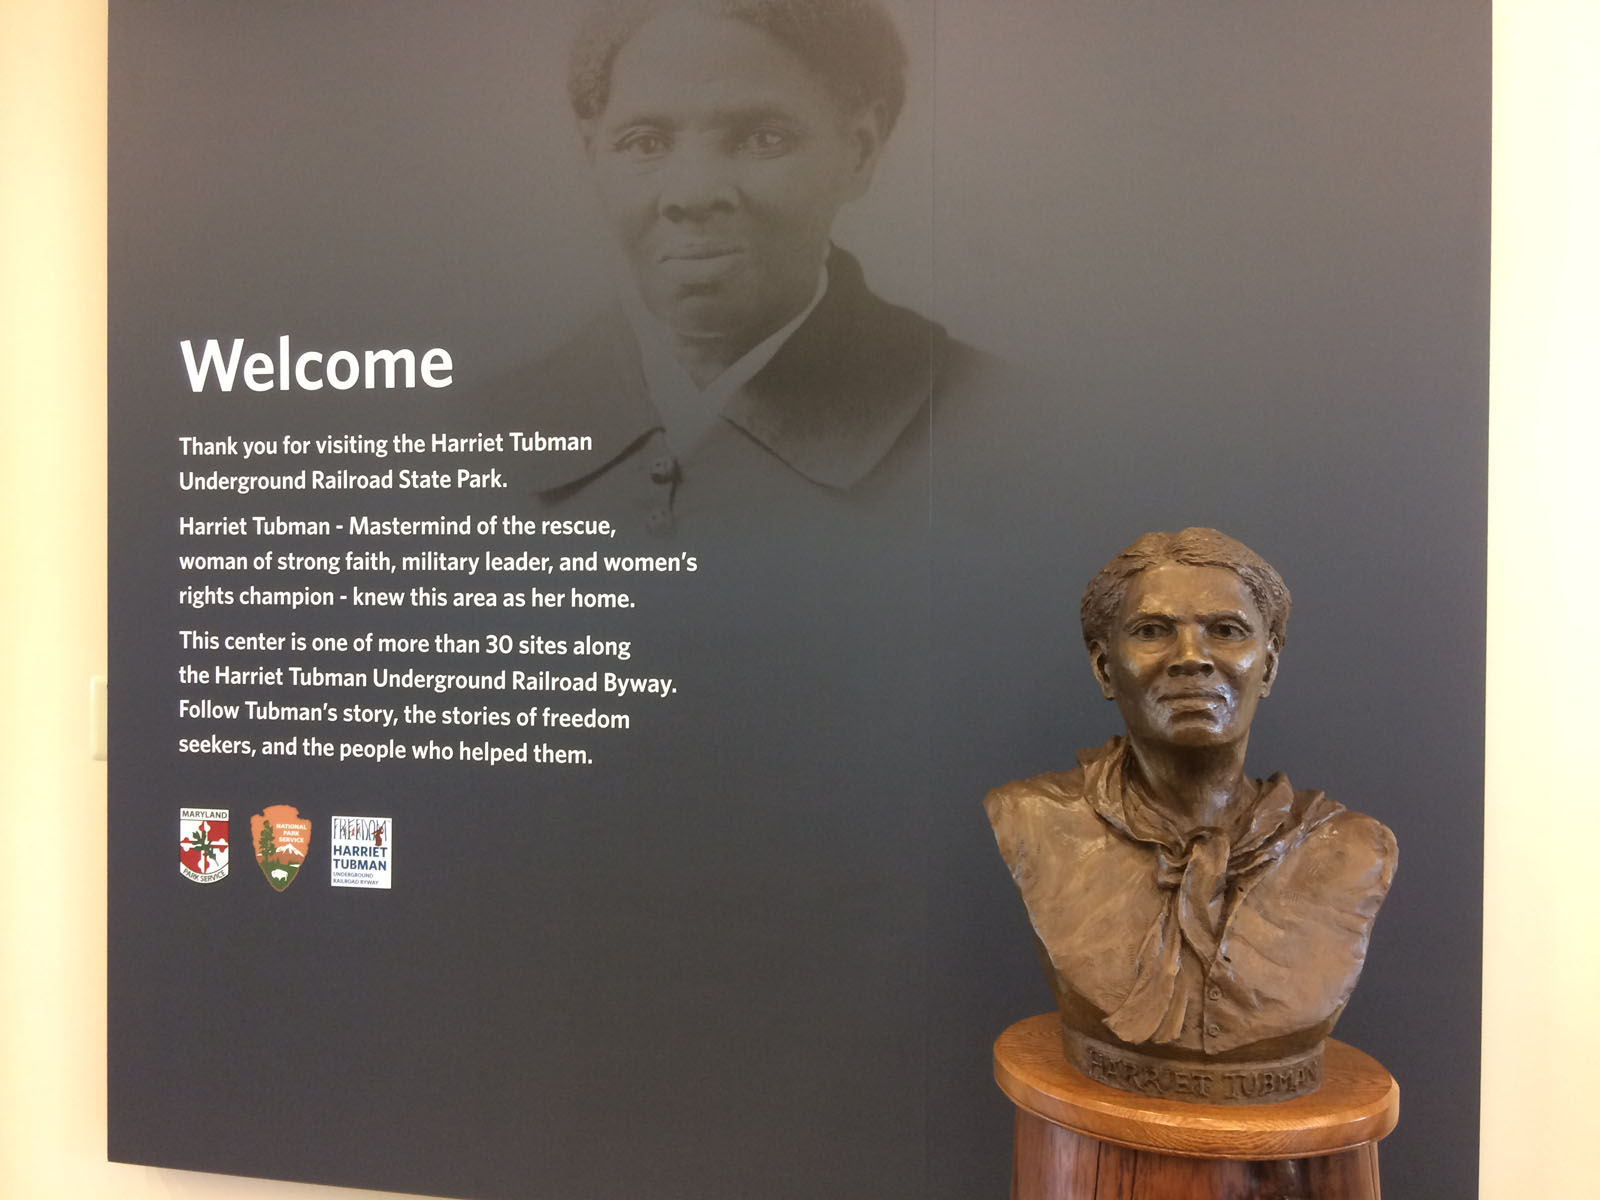 Once she reached freedom in the north Tubman repeatedly risked her life returning to the eastern shore to lead to freedom about 70 friends and family members including her mother and father. (Dick Uliano/WTOP)